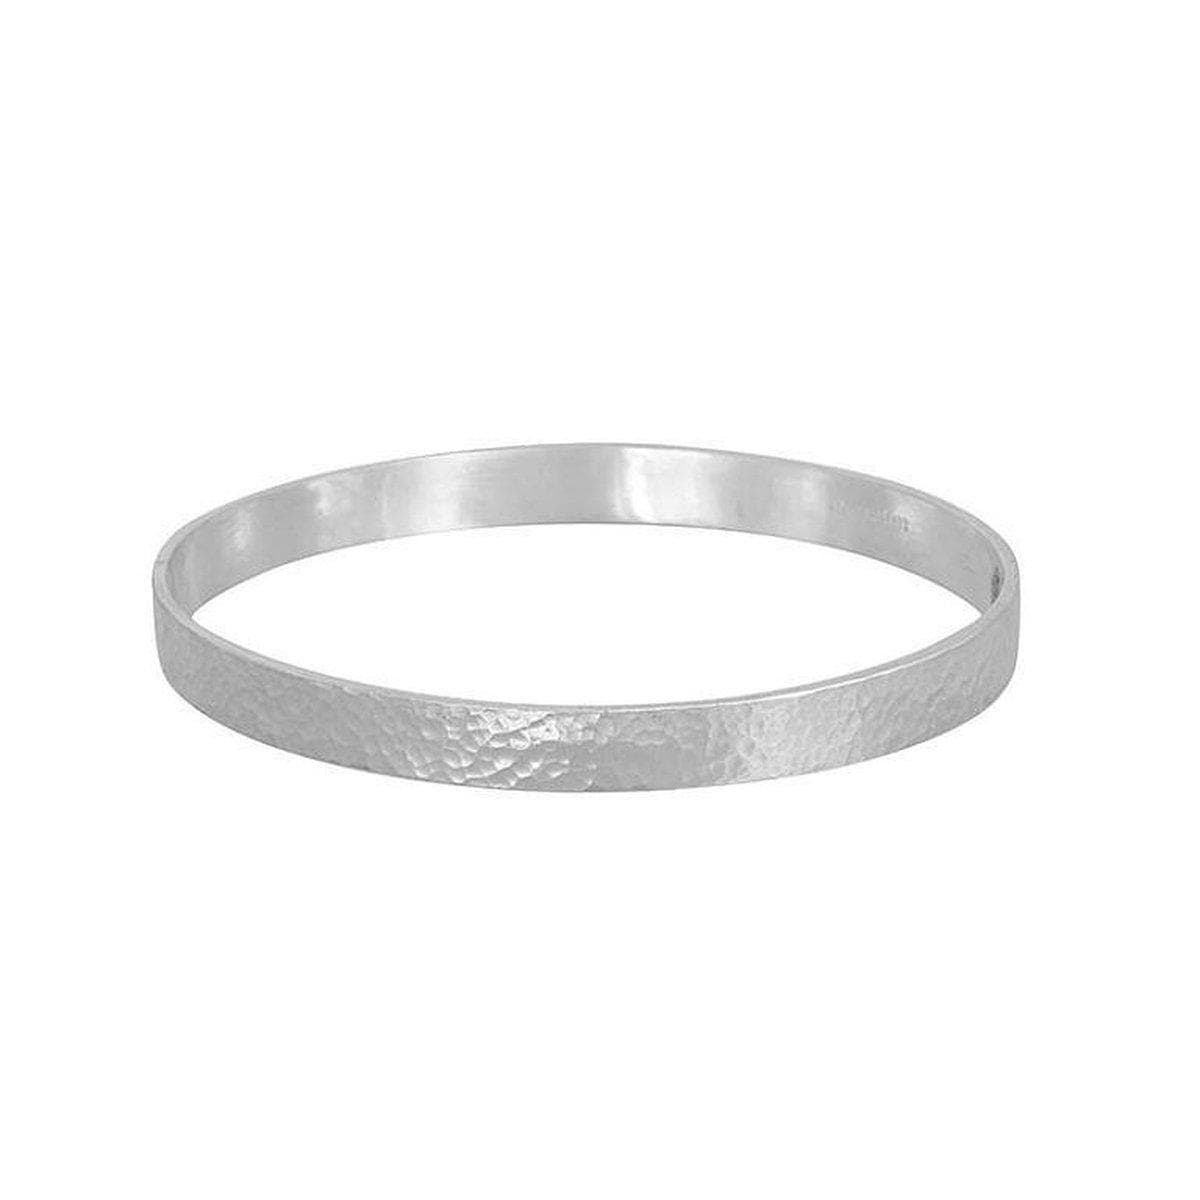 Mango Sterling Silver Bangle - SNB-RTMN-SN-S-GURHAN-Renee Taylor Gallery